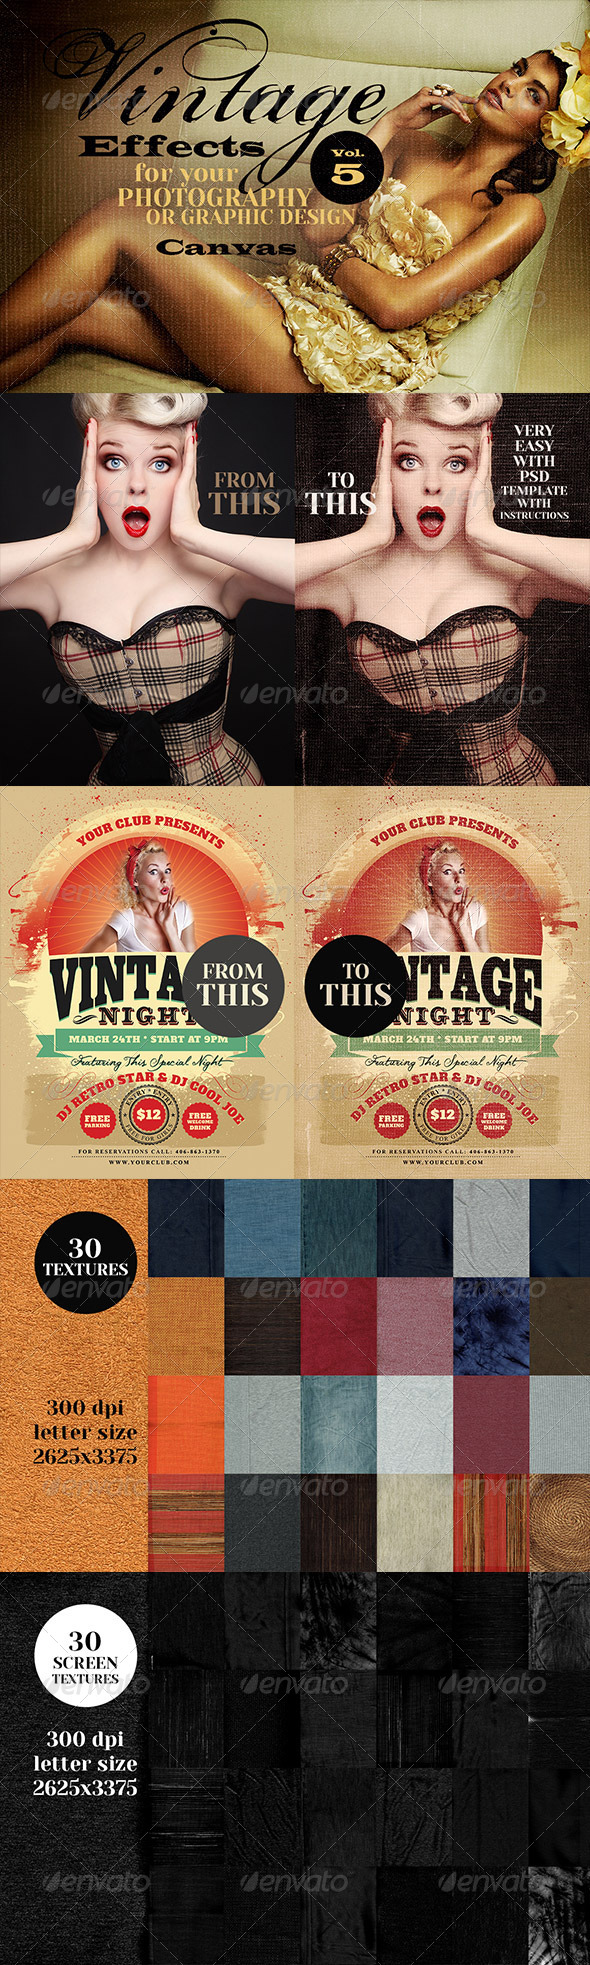 GraphicRiver Vintage Effects for Photo Designs 5 7032244